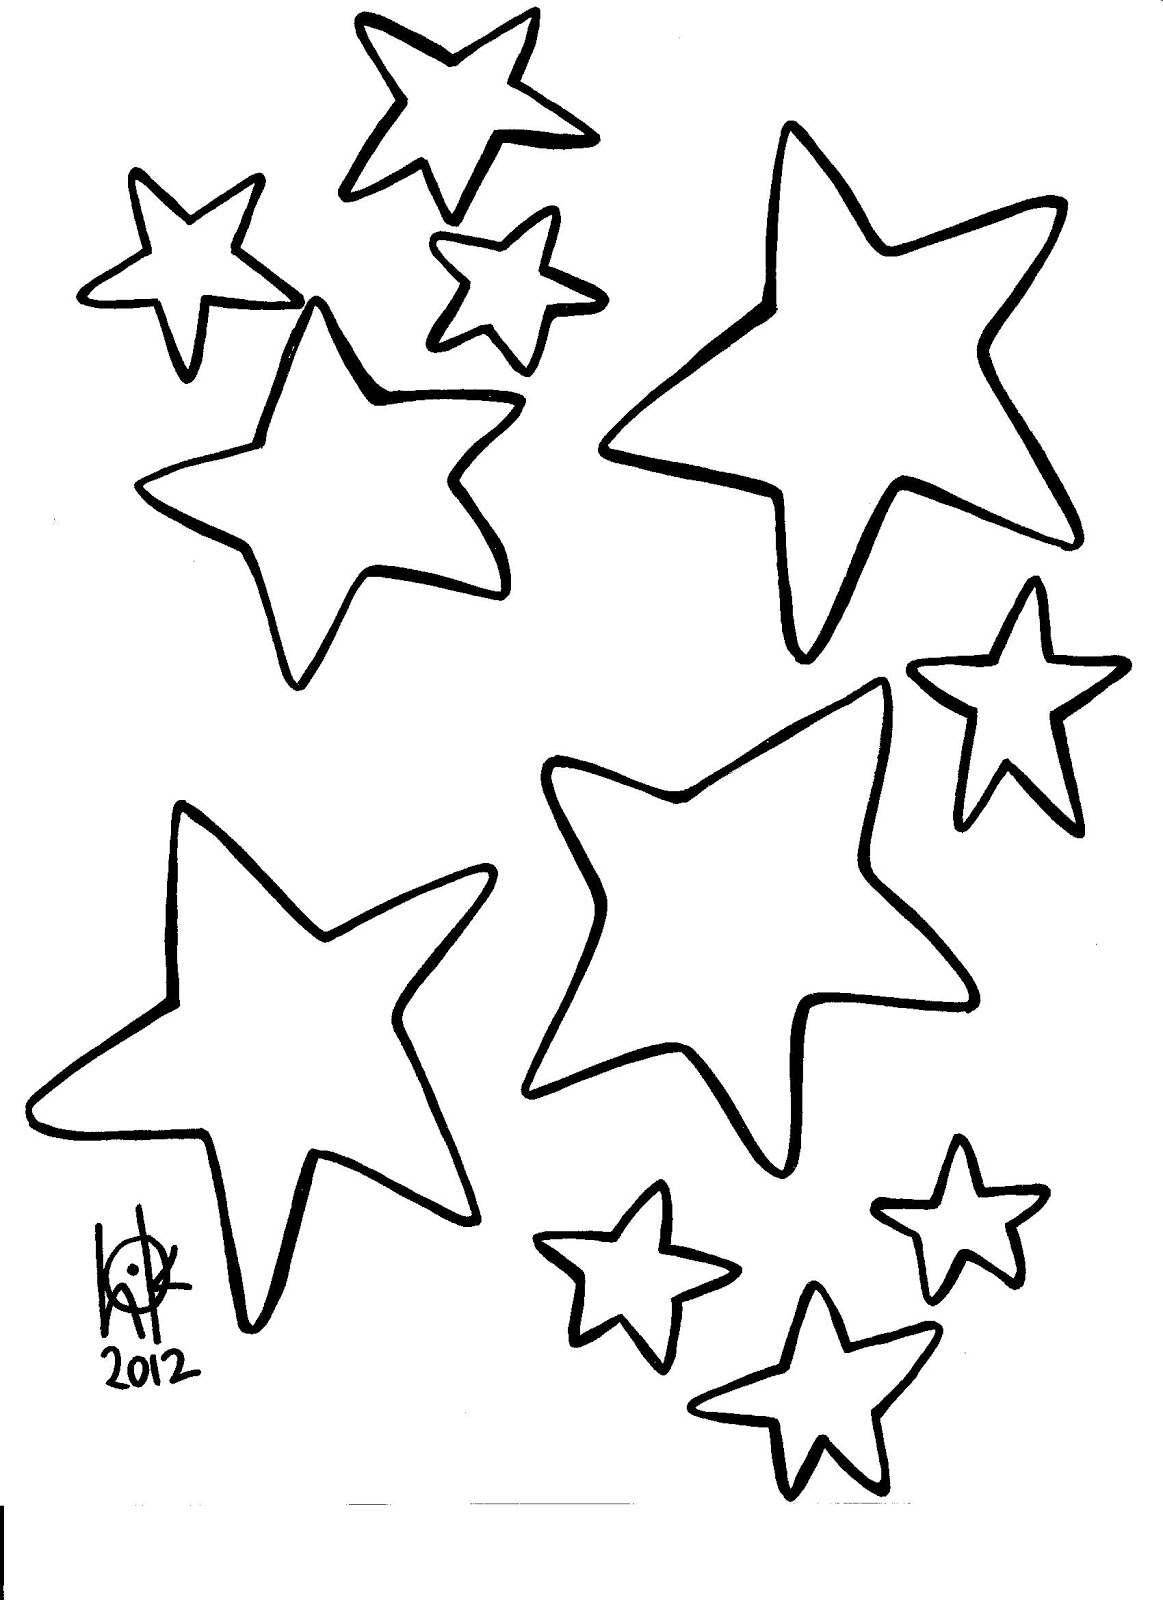 coloring pages shooting star - photo#15